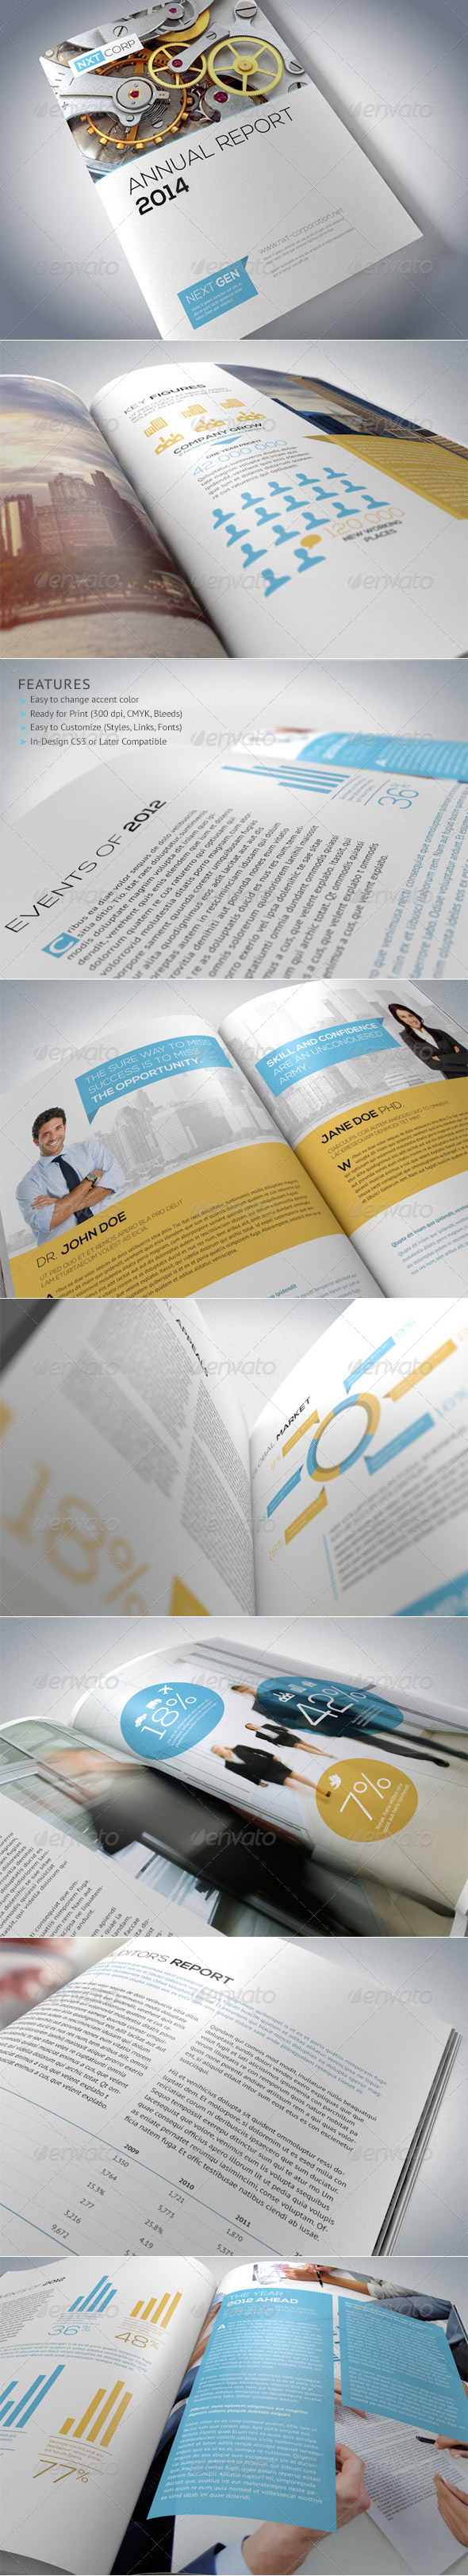 annual_report_2012_mockup-template-brochure